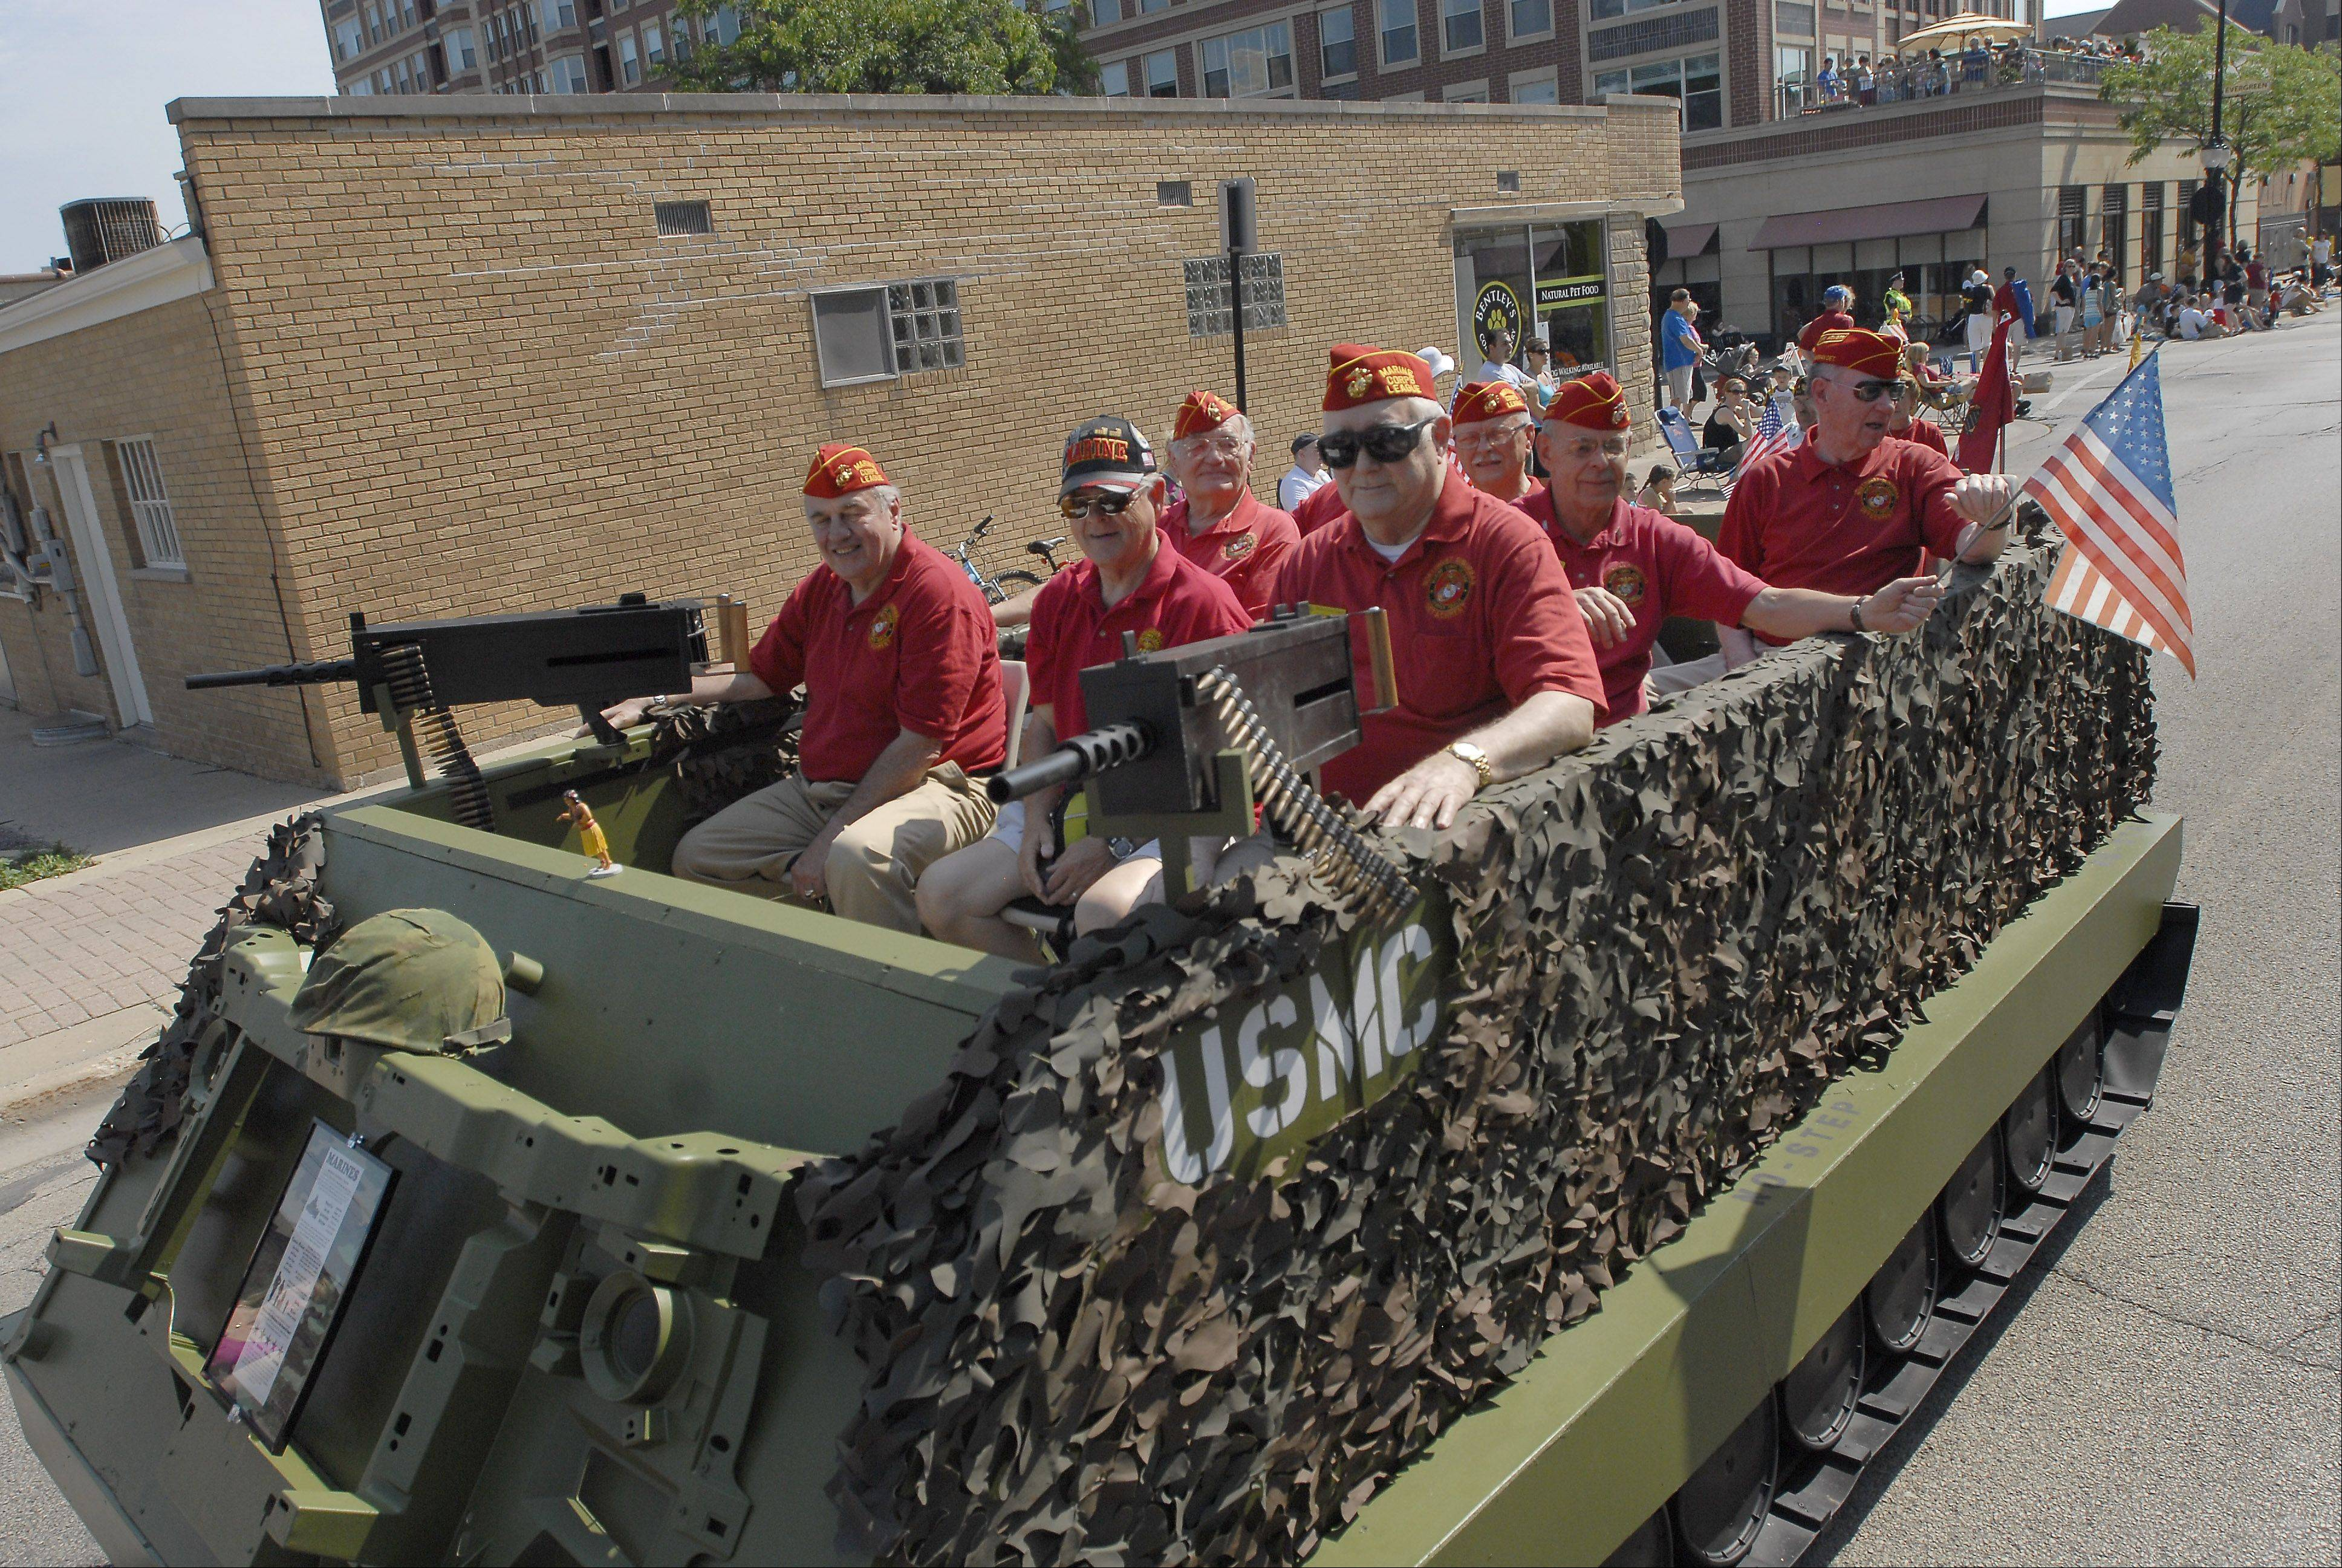 The Marine Corps League rides in the Memorial Day parade in Monday in Arlington Heights.